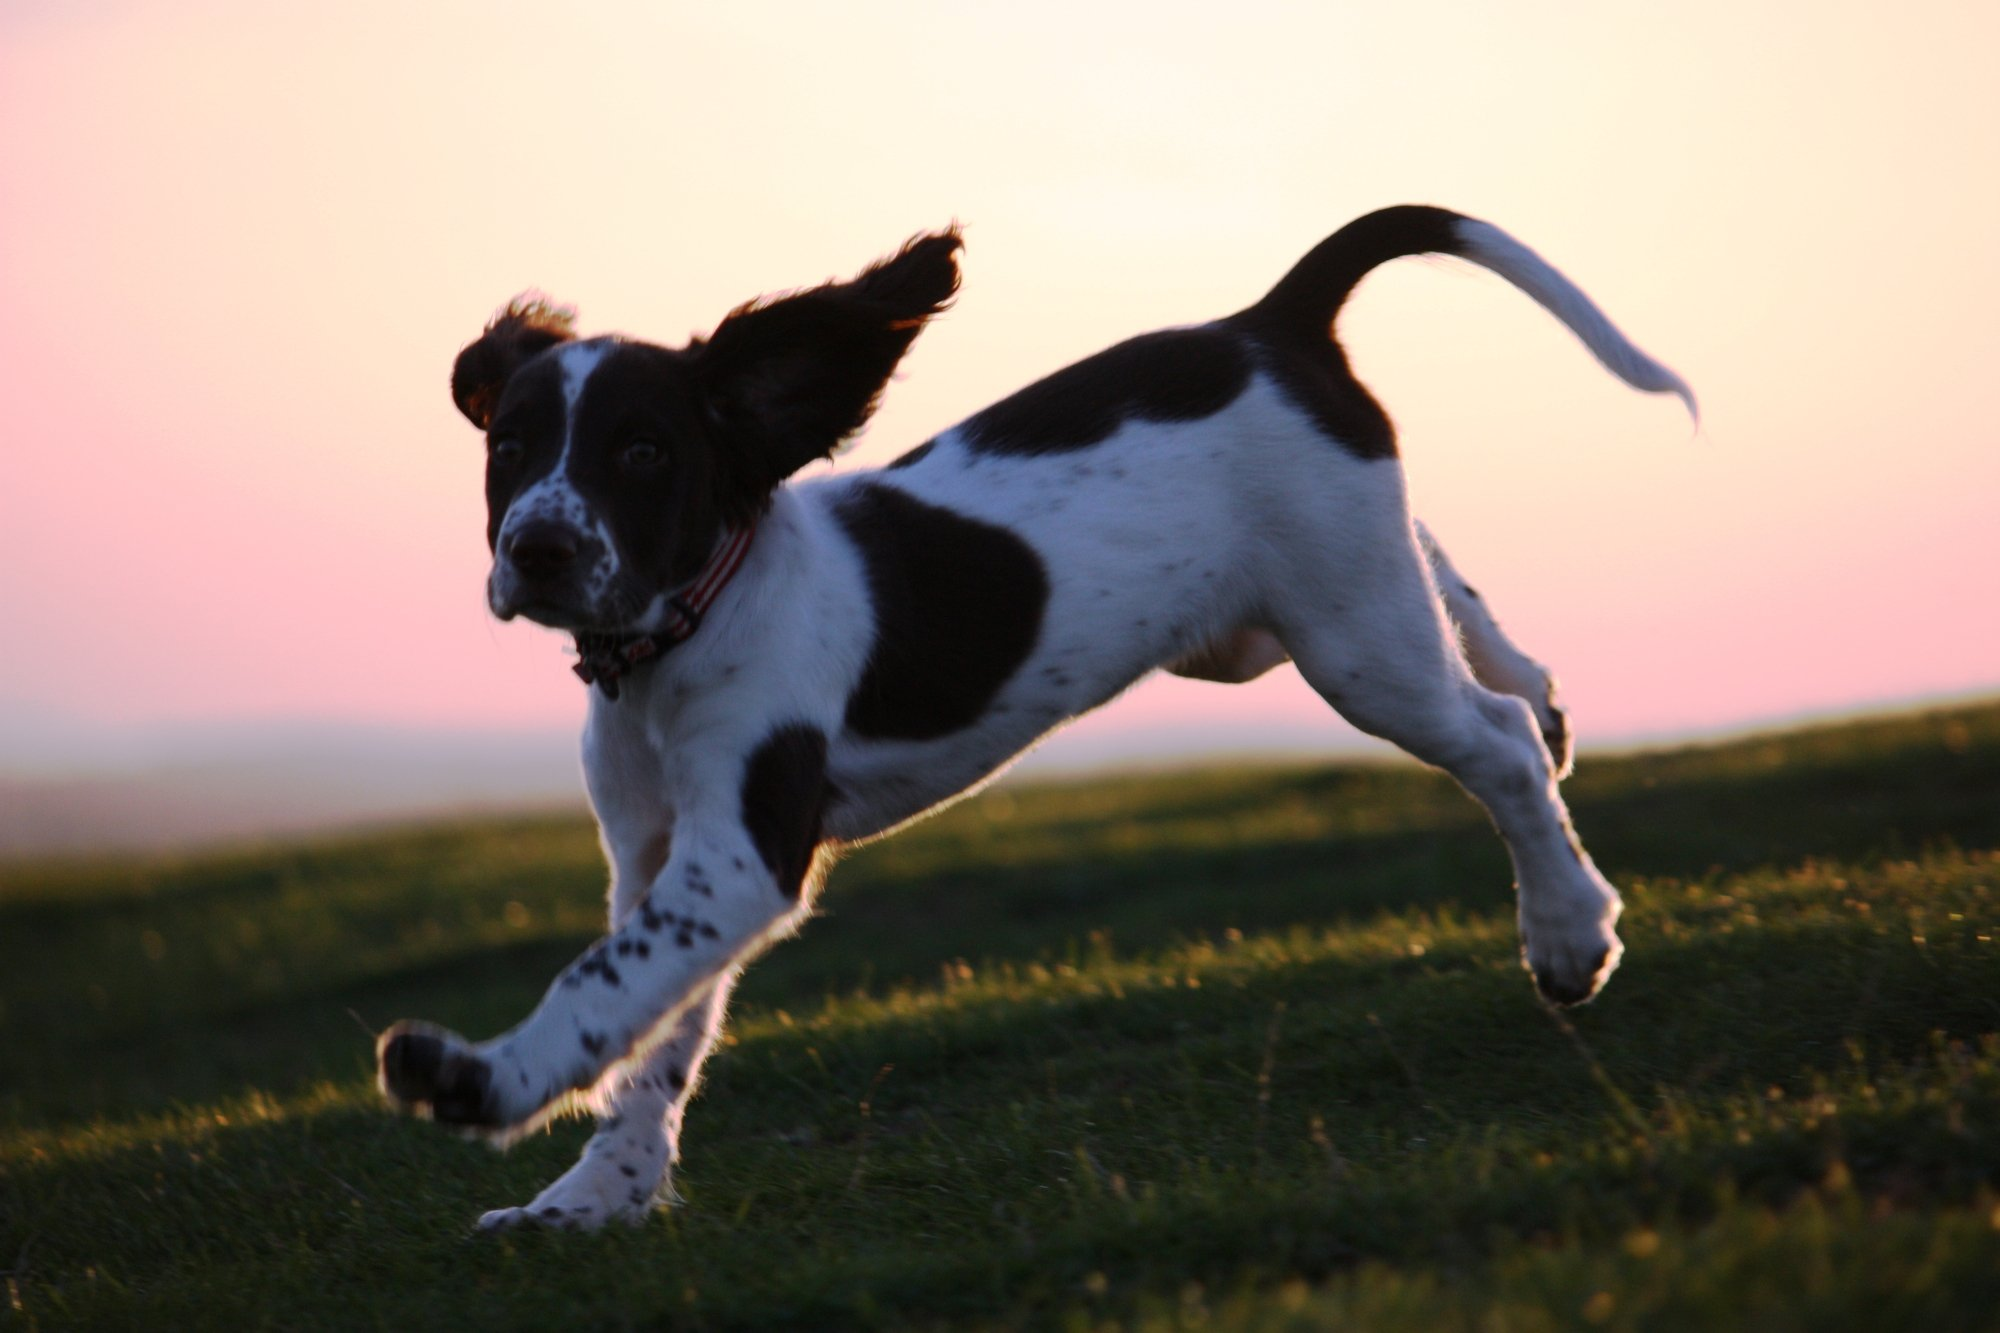 English Springer Spaniel puppy running outdoors with a sunset in the background.